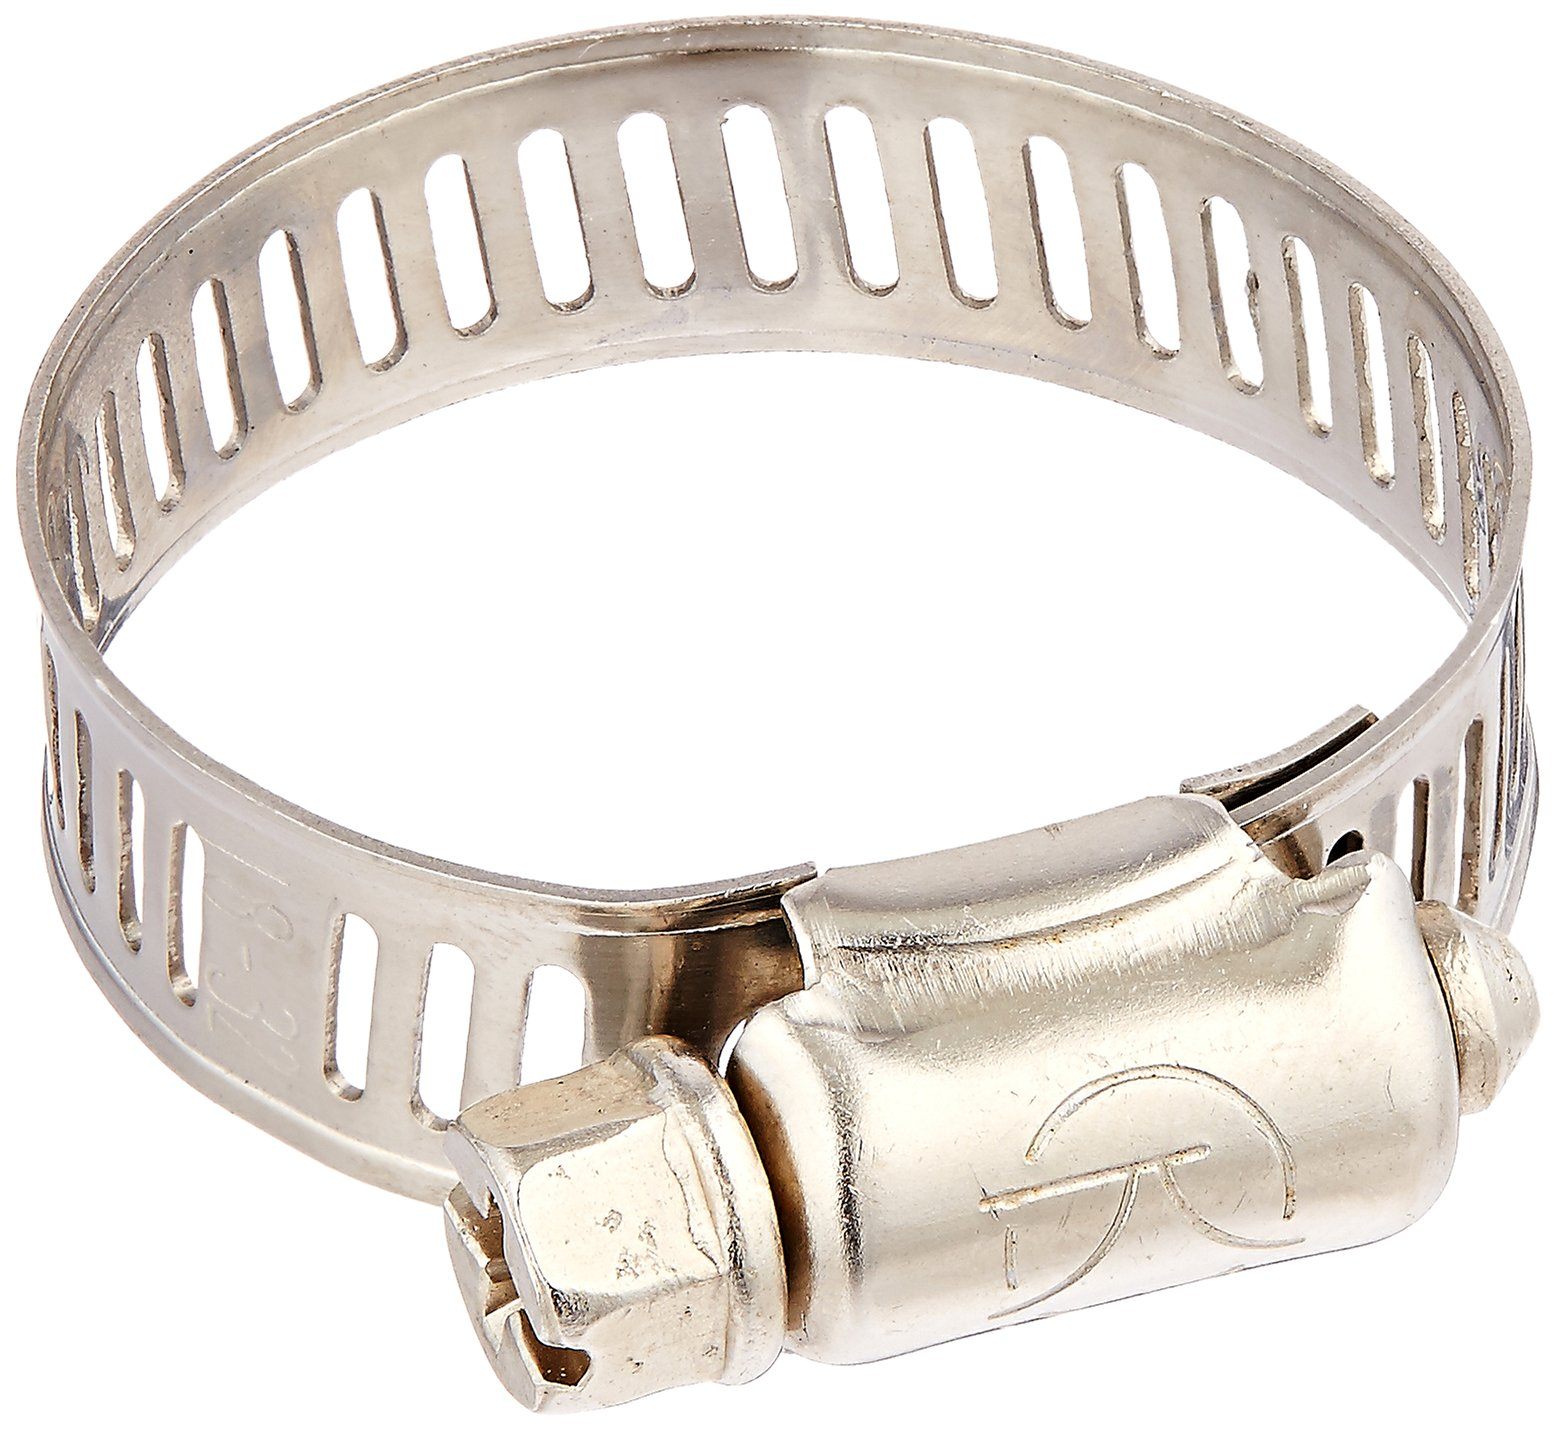 Uxcell Water Gas Pipe Worm Drive Hose Clamp Adjustable Hoop (5 Piece), 18-32mm